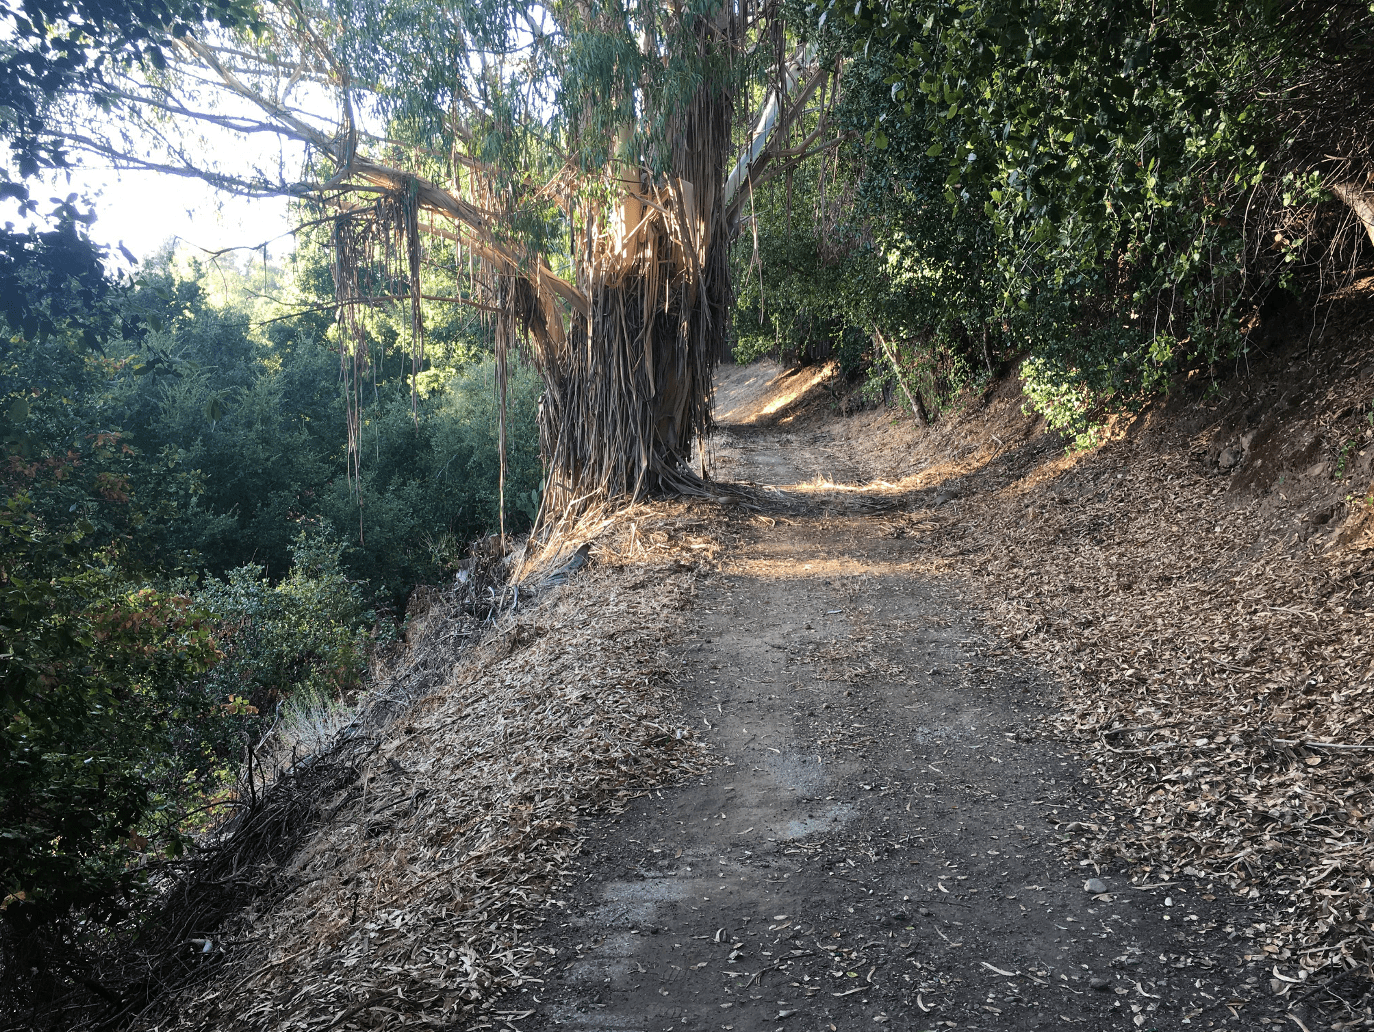 Get to know the future Linda Vista trail